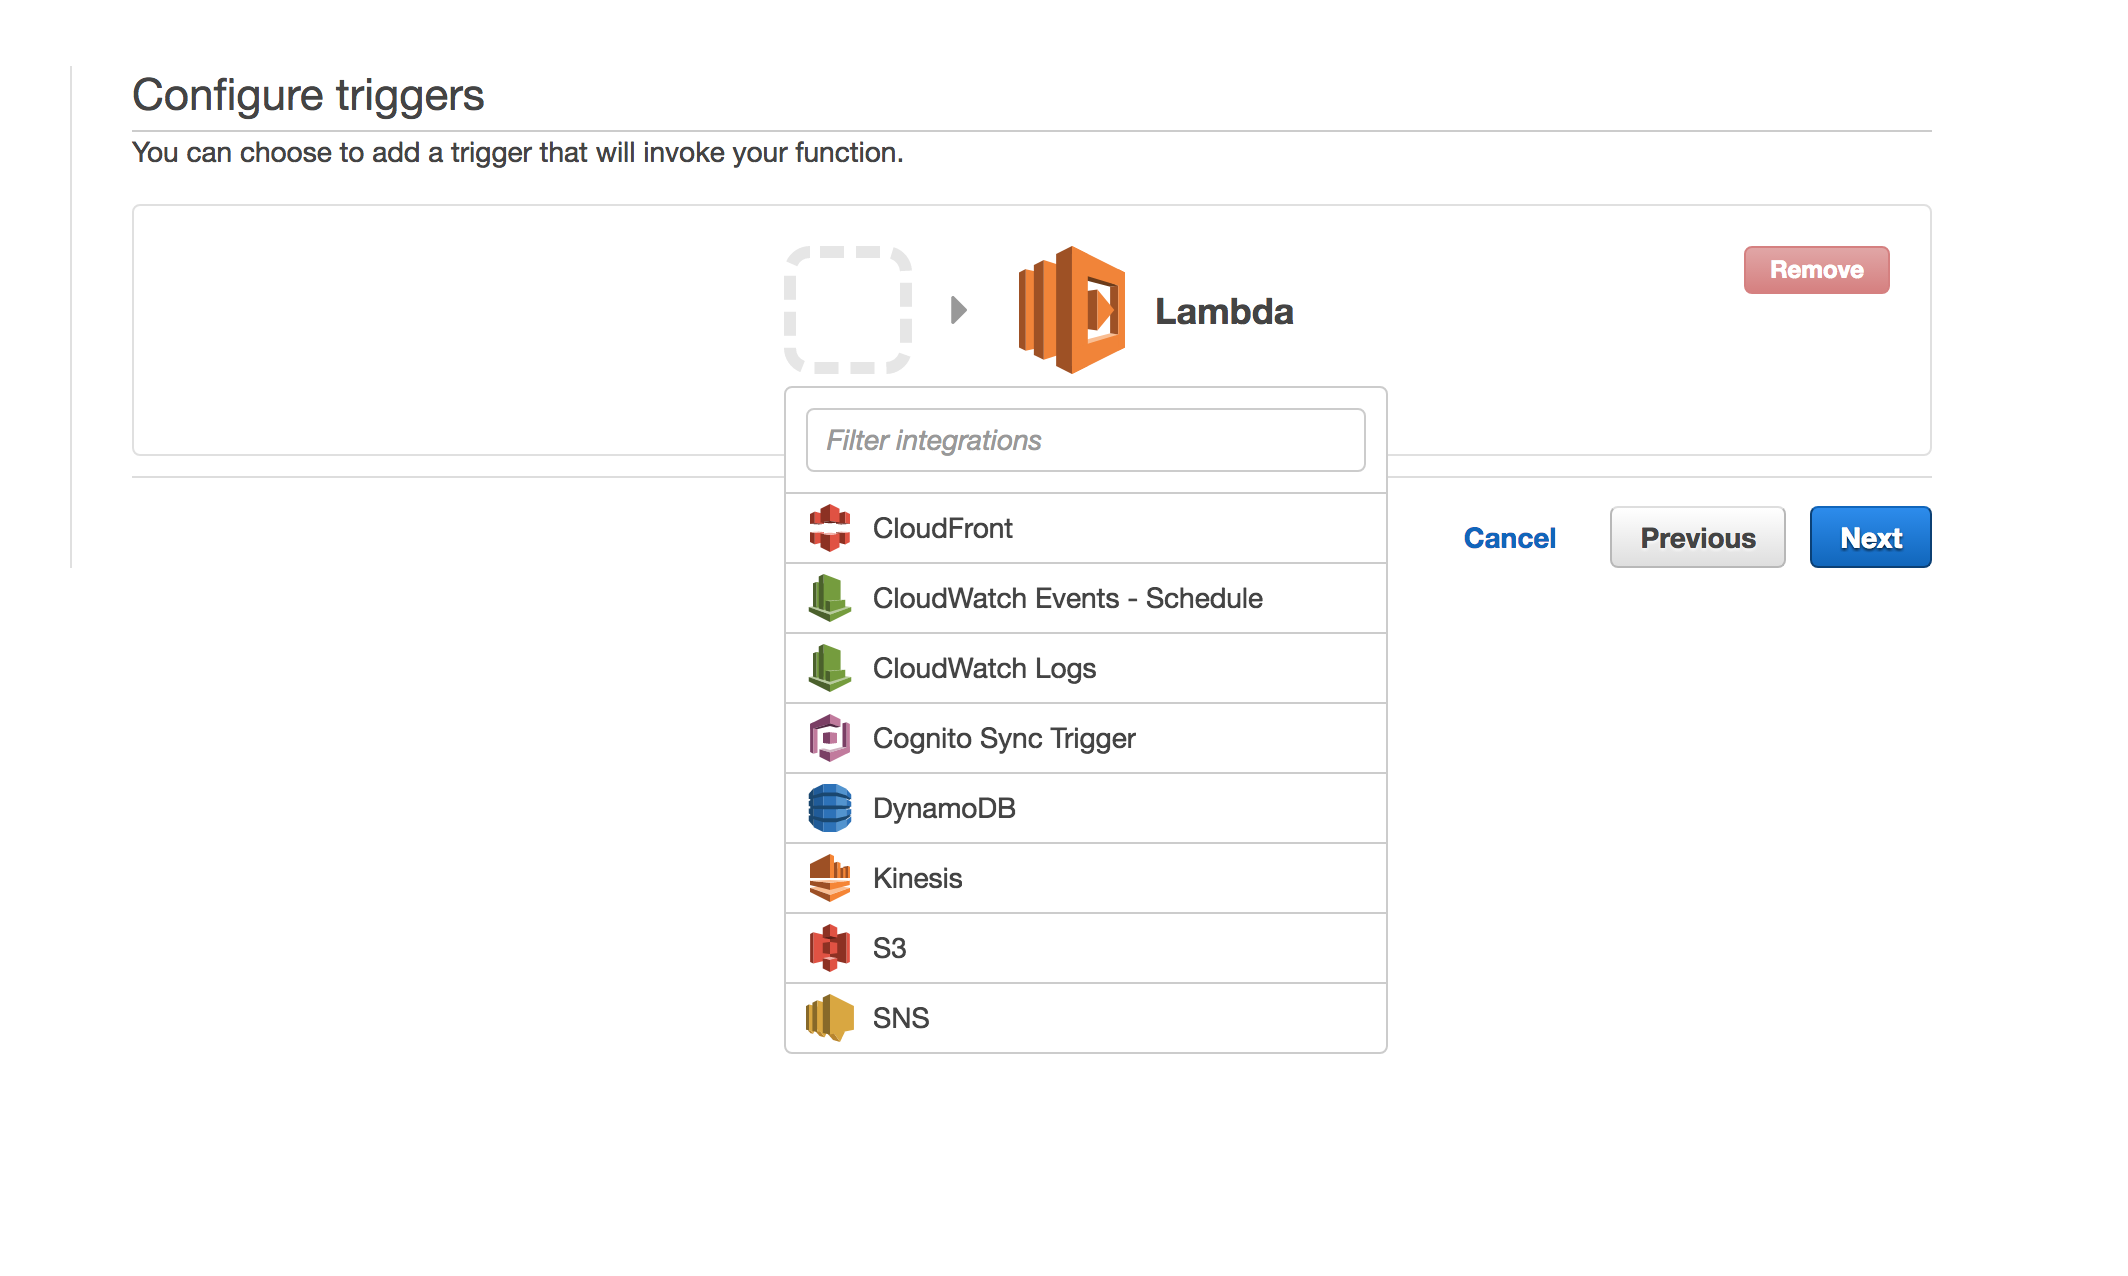 Image 1: select S3 from the AWS service list to define a trigger